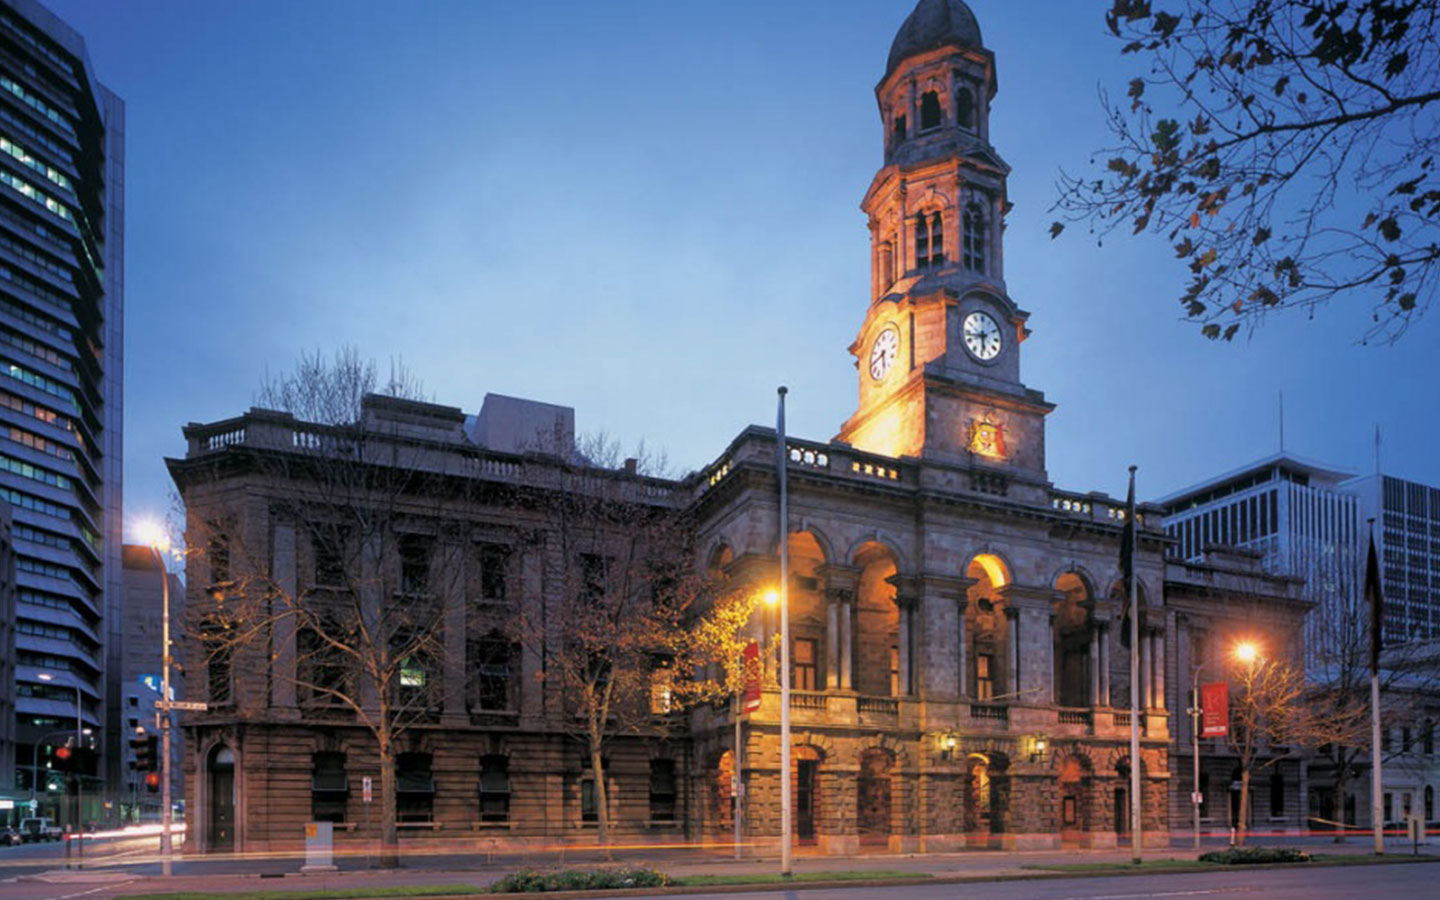 The Exterior of the Adelaide Town Hall